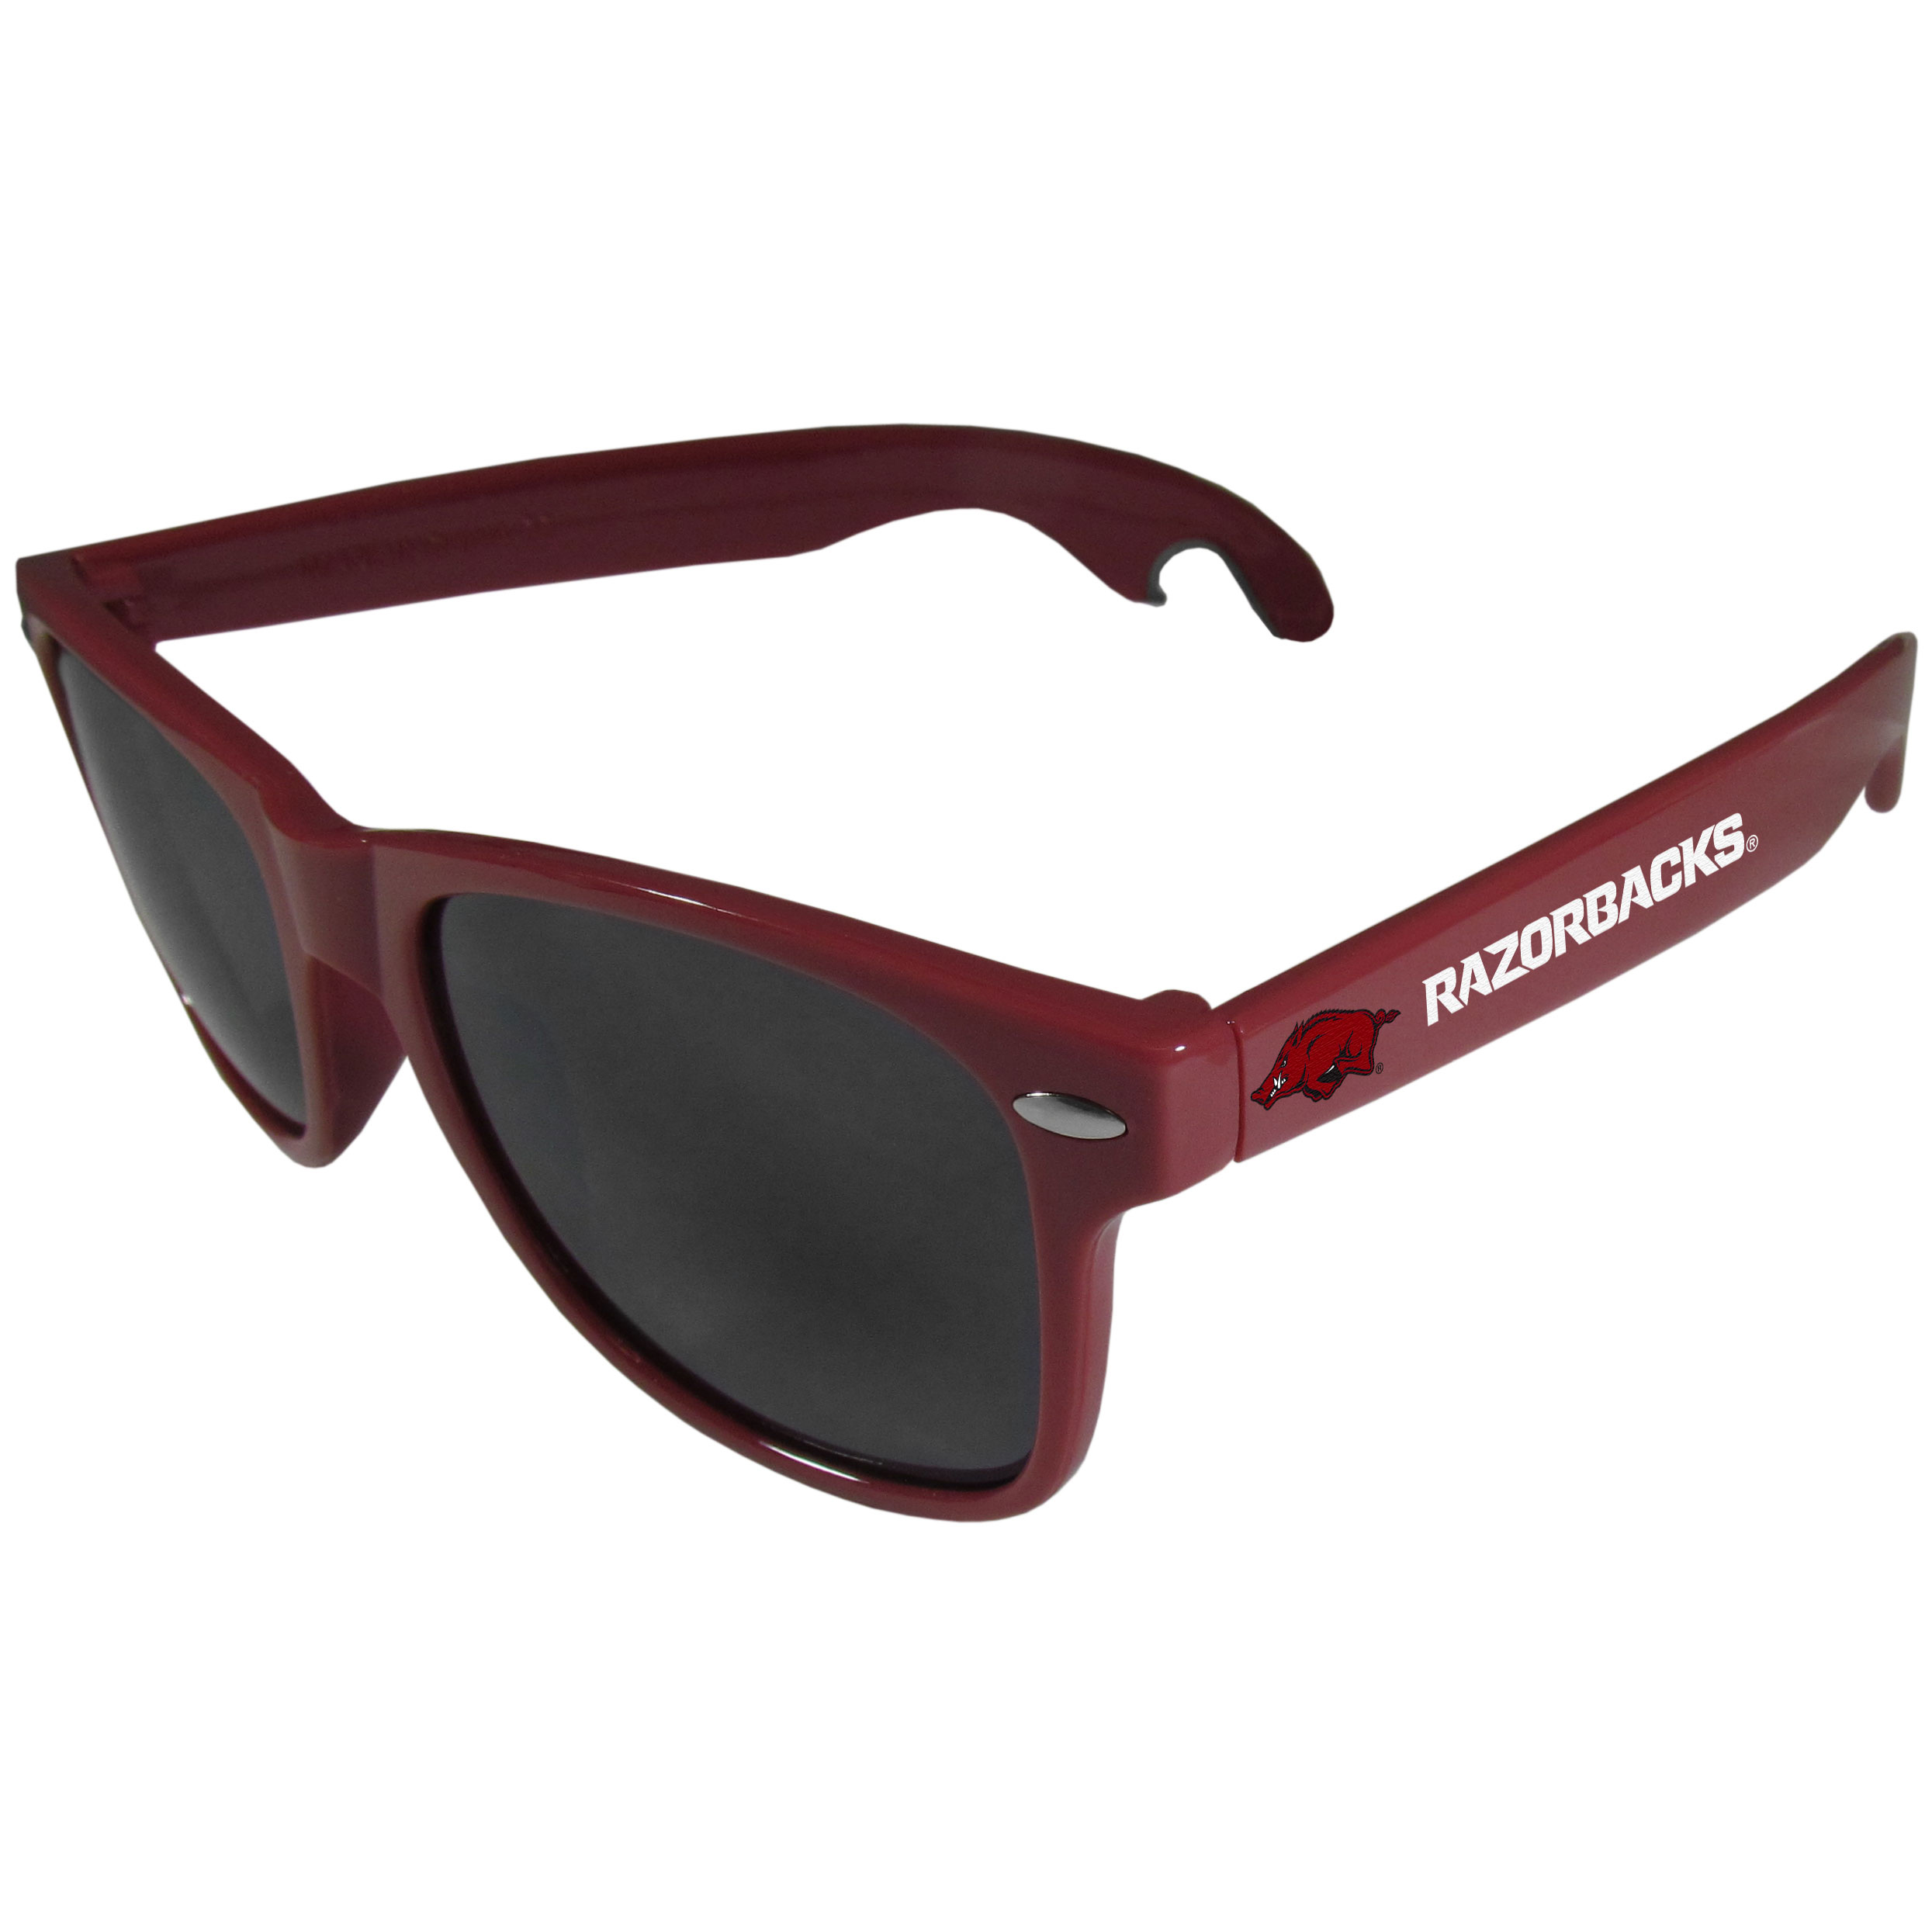 Arkansas Razorbacks Beachfarer Bottle Opener Sunglasses, Maroon - Seriously, these sunglasses open bottles! Keep the party going with these amazing Arkansas Razorbacks bottle opener sunglasses. The stylish retro frames feature team designs on the arms and functional bottle openers on the end of the arms. Whether you are at the beach or having a backyard BBQ on game day, these shades will keep your eyes protected with 100% UVA/UVB protection and keep you hydrated with the handy bottle opener arms.